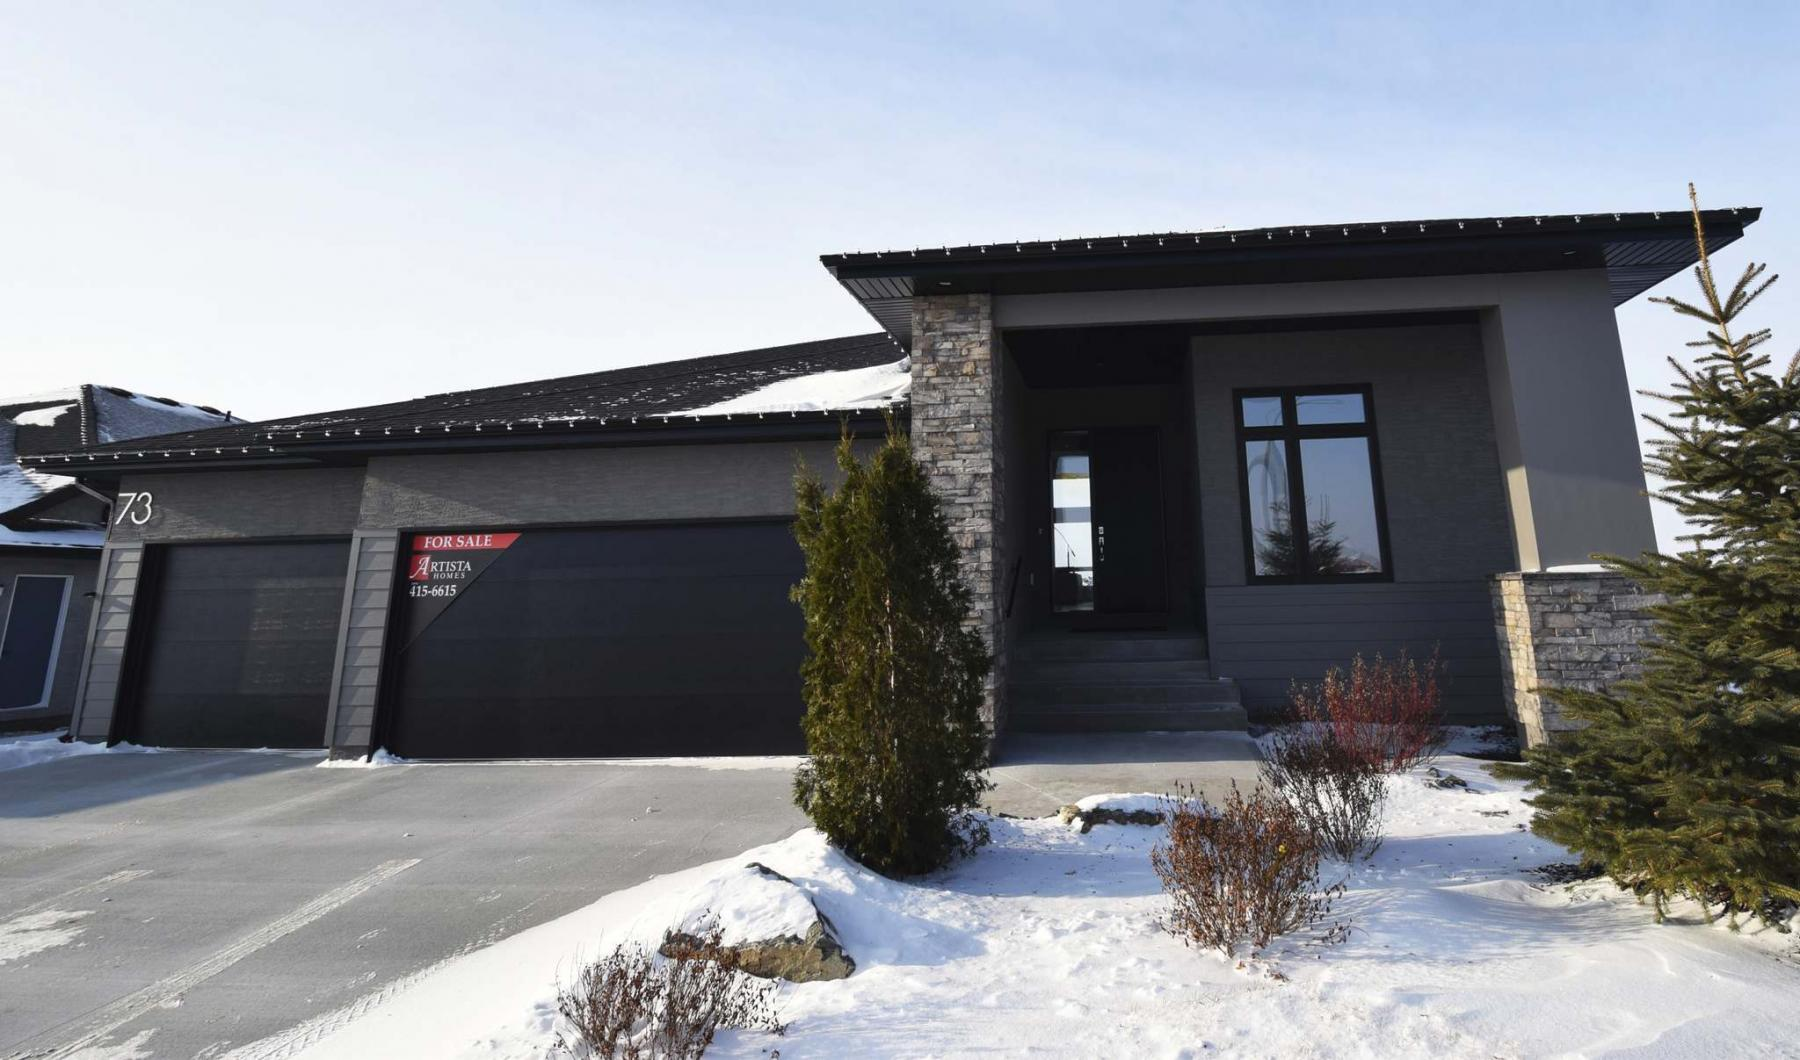 <p>Todd Lewys / Winnipeg Free Press files </p><p>The Manitoba Home Builders&rsquo; Association&rsquo;s 2020 Spring Parade of Homes runs from Feb. 29 to March 22.</p>